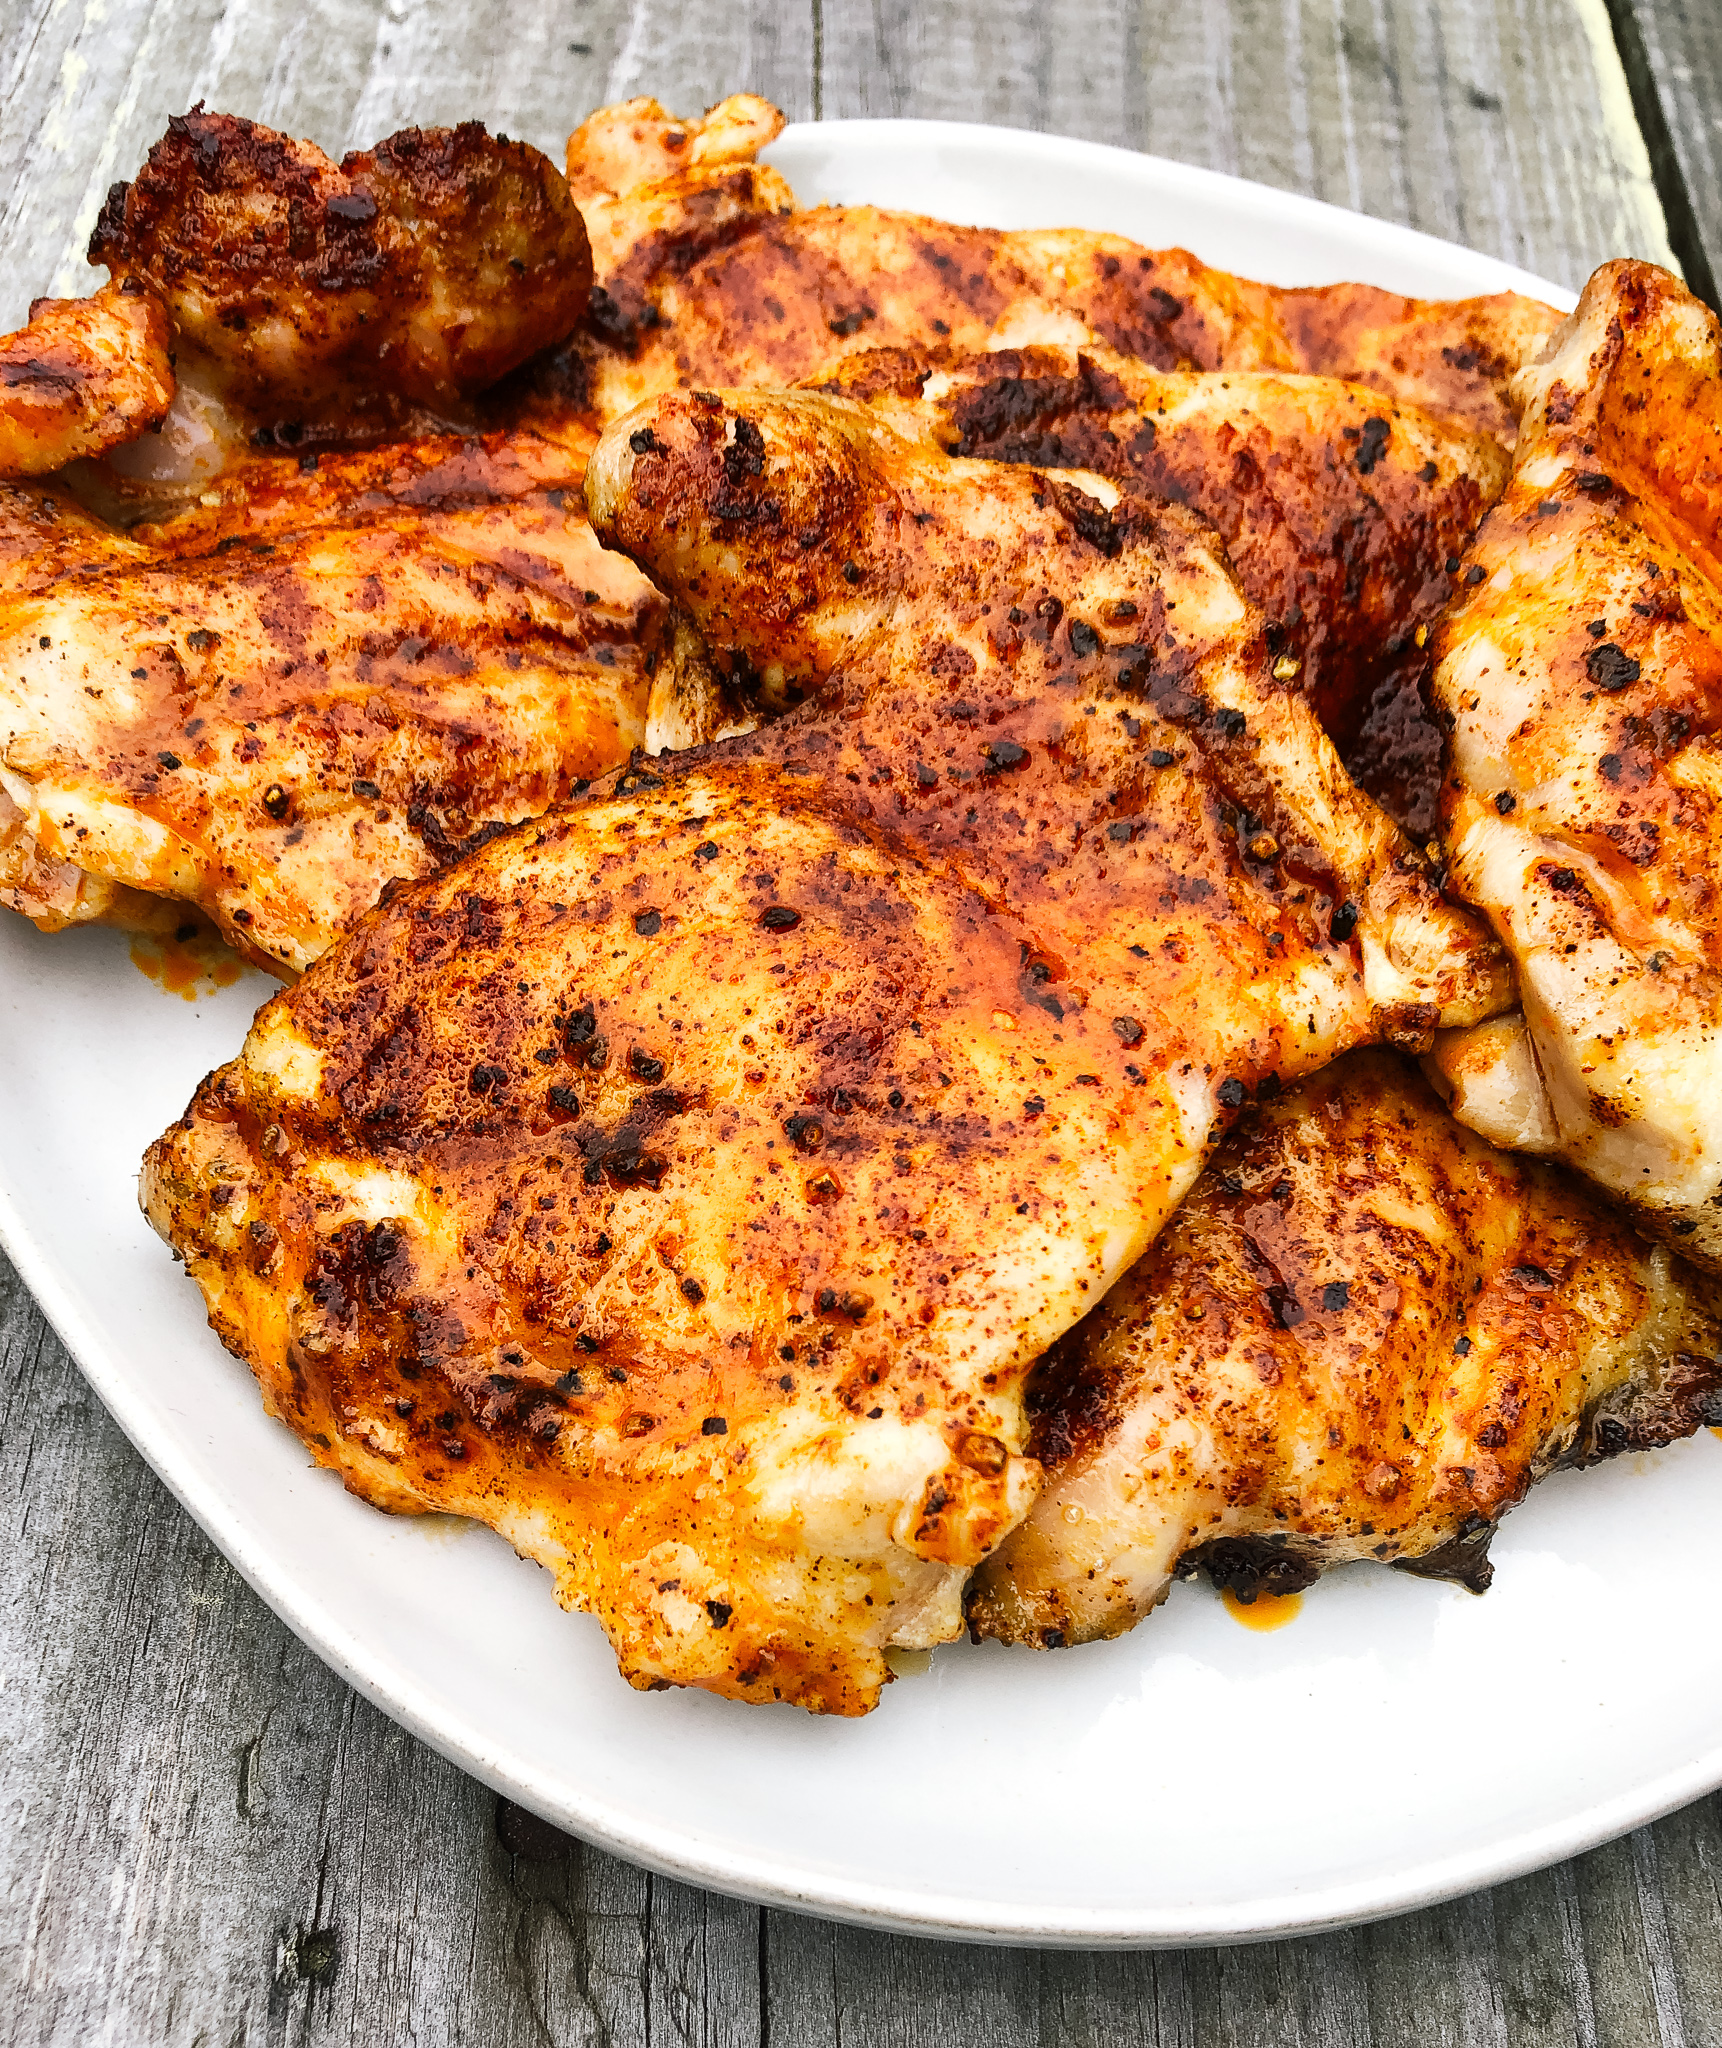 Whole30 Grilled buffalo chicken thighs bring all of the taste and flavor of traditional buffalo chicken wings, but with Whole30 and paleo ingredients plus way less mess! Its grilling season so its time to add this simple whole30 protein to your summer meal prep repetoire